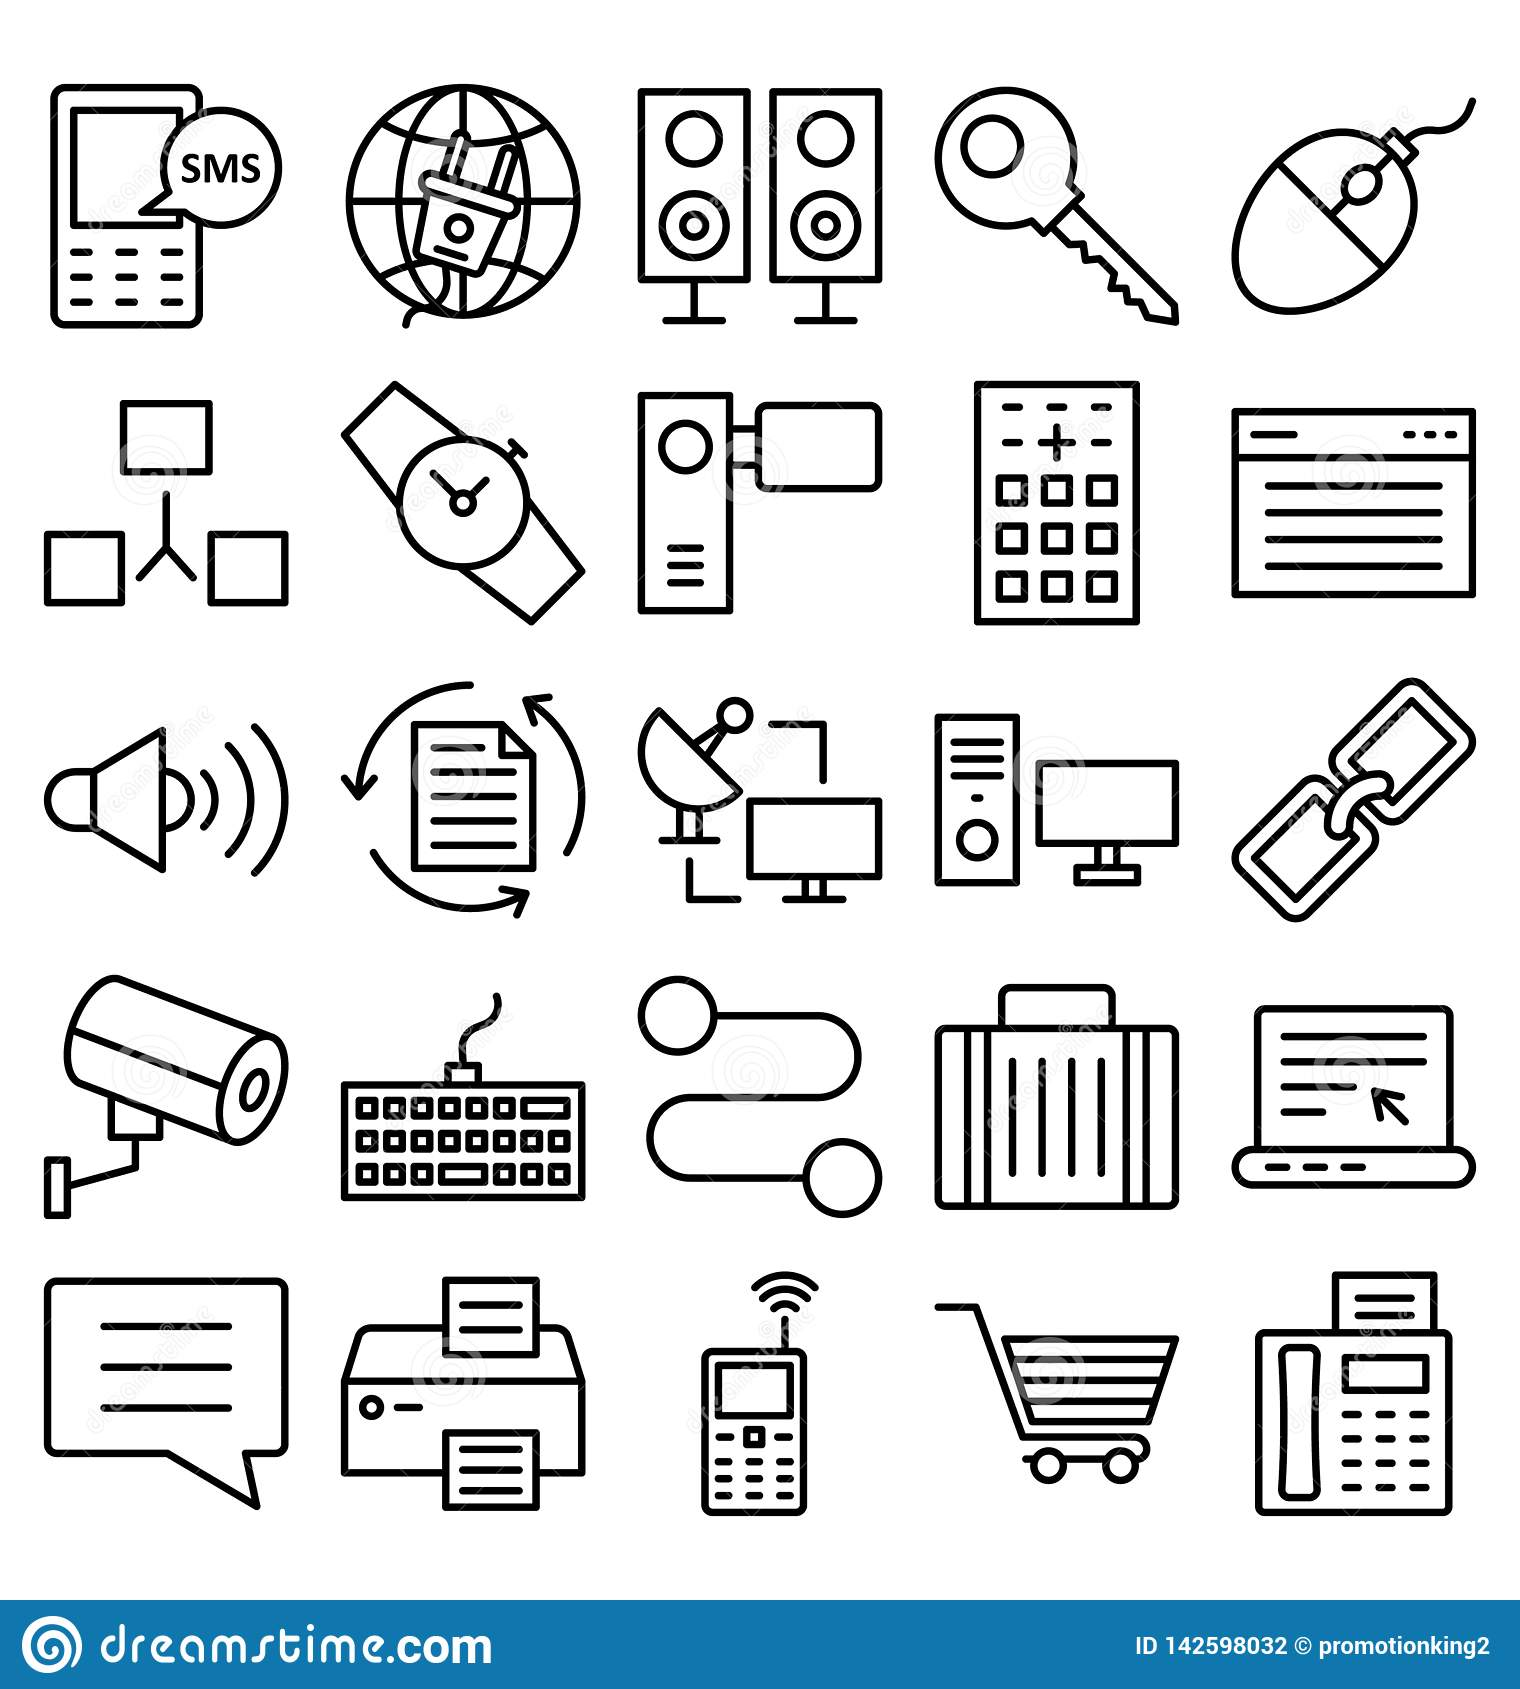 Communication and Digital Devices Isolated Vector Icons set that can be easily modified or edit